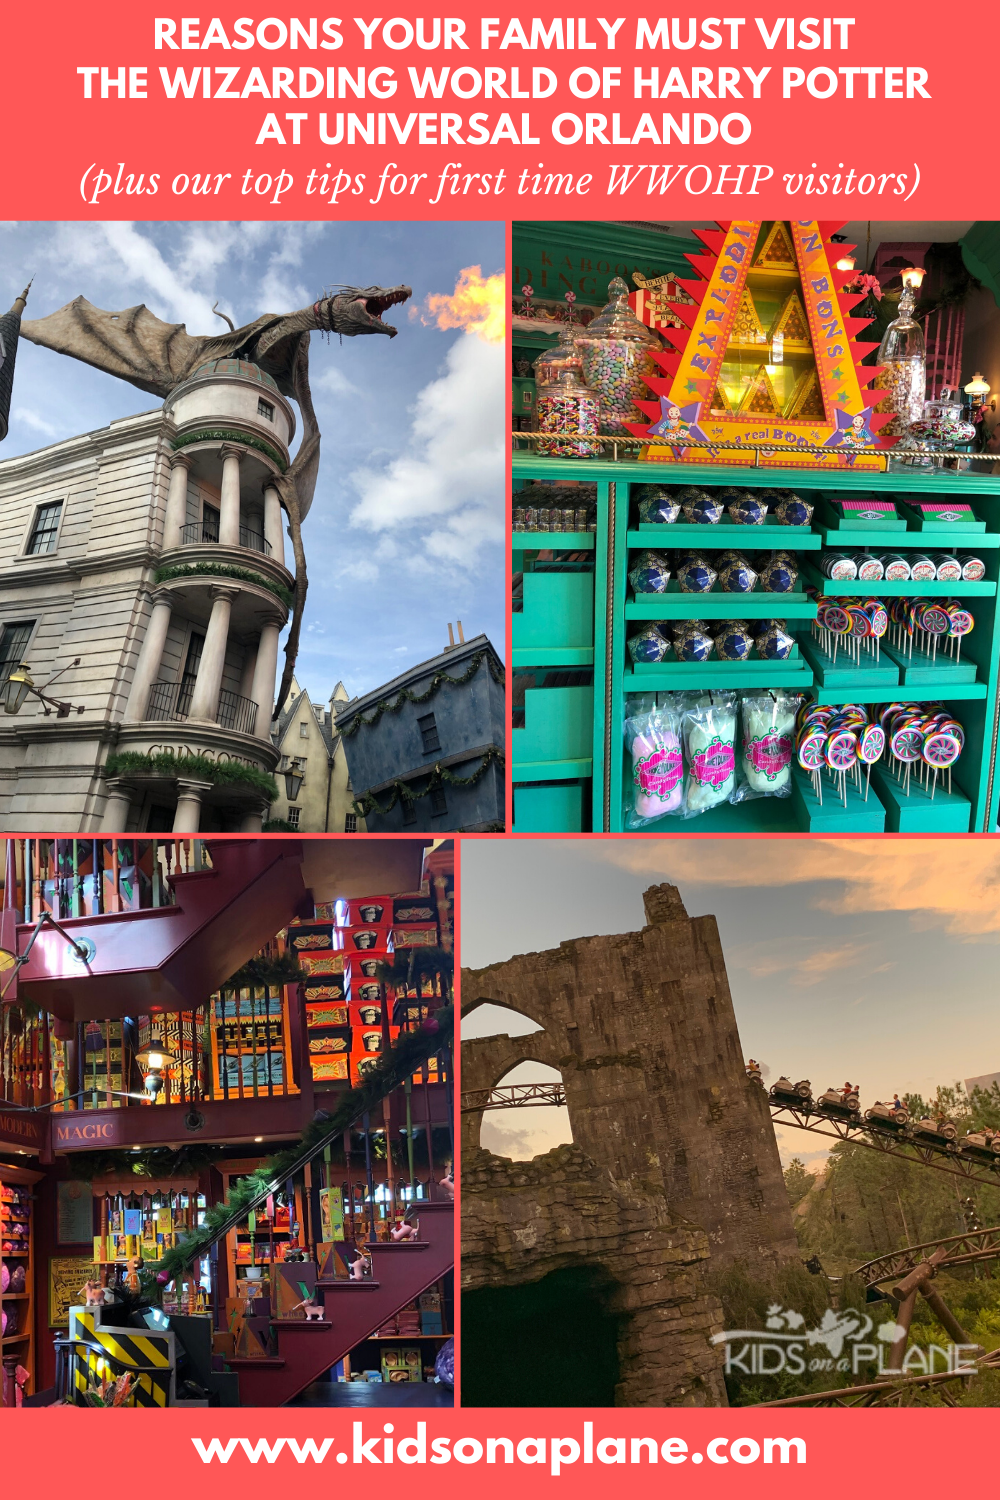 Top reasons to visit Universal Orlando WWOHP plus our best tips for first time visitors